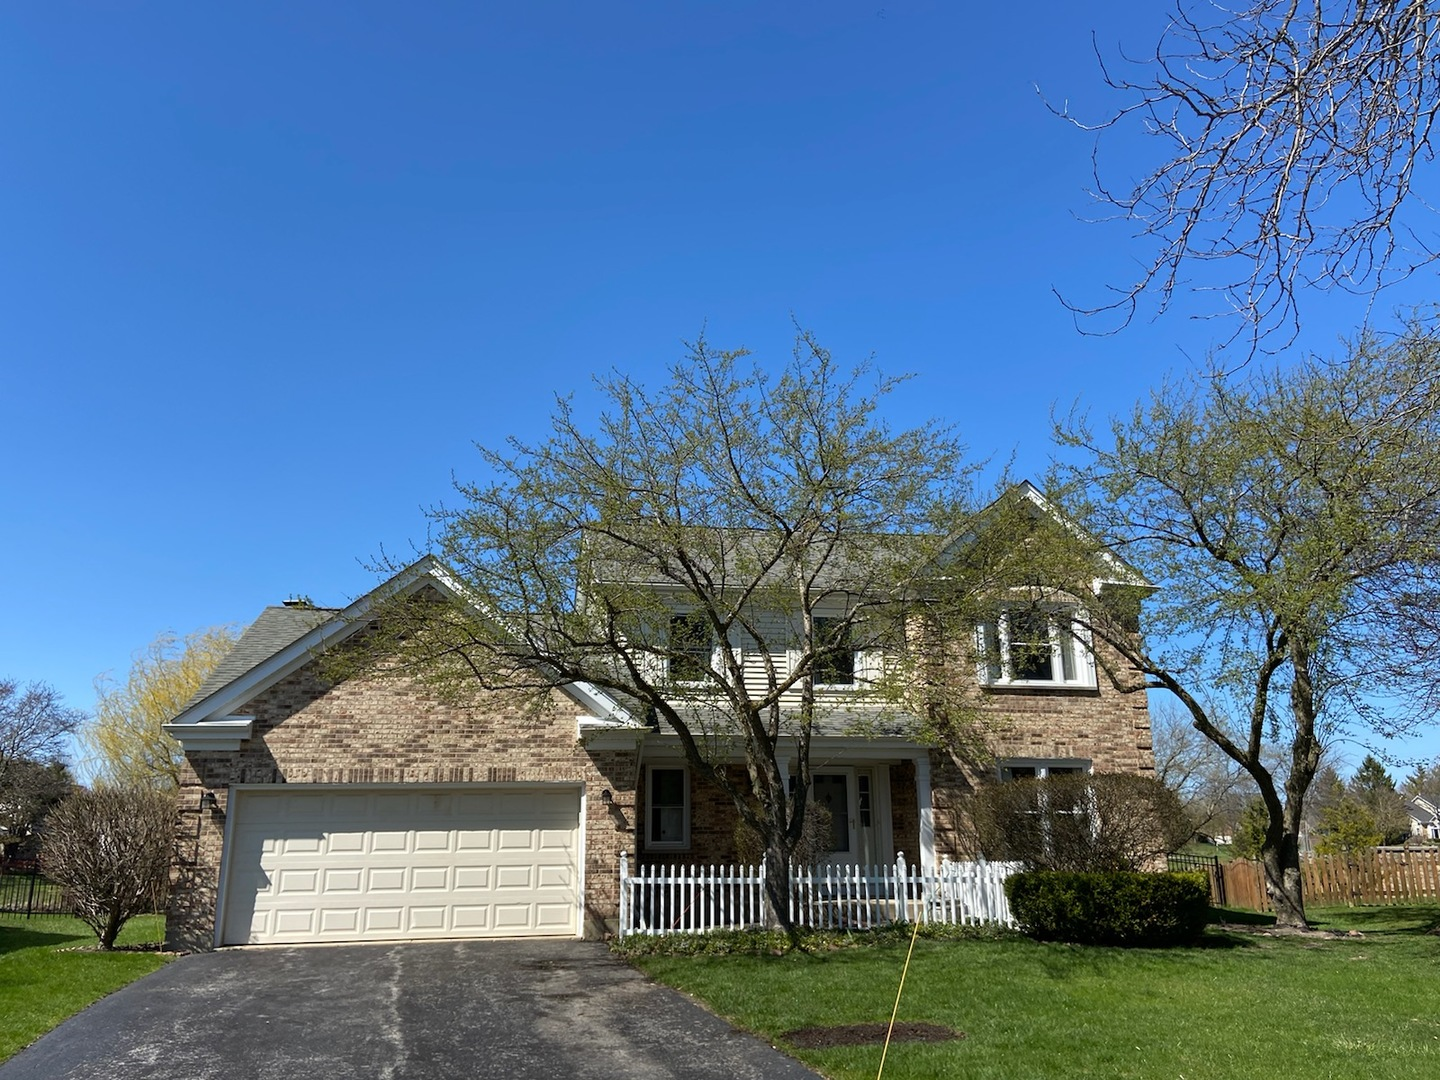 45 Trotwood Court, Buffalo Grove in Lake County, IL 60089 Home for Sale